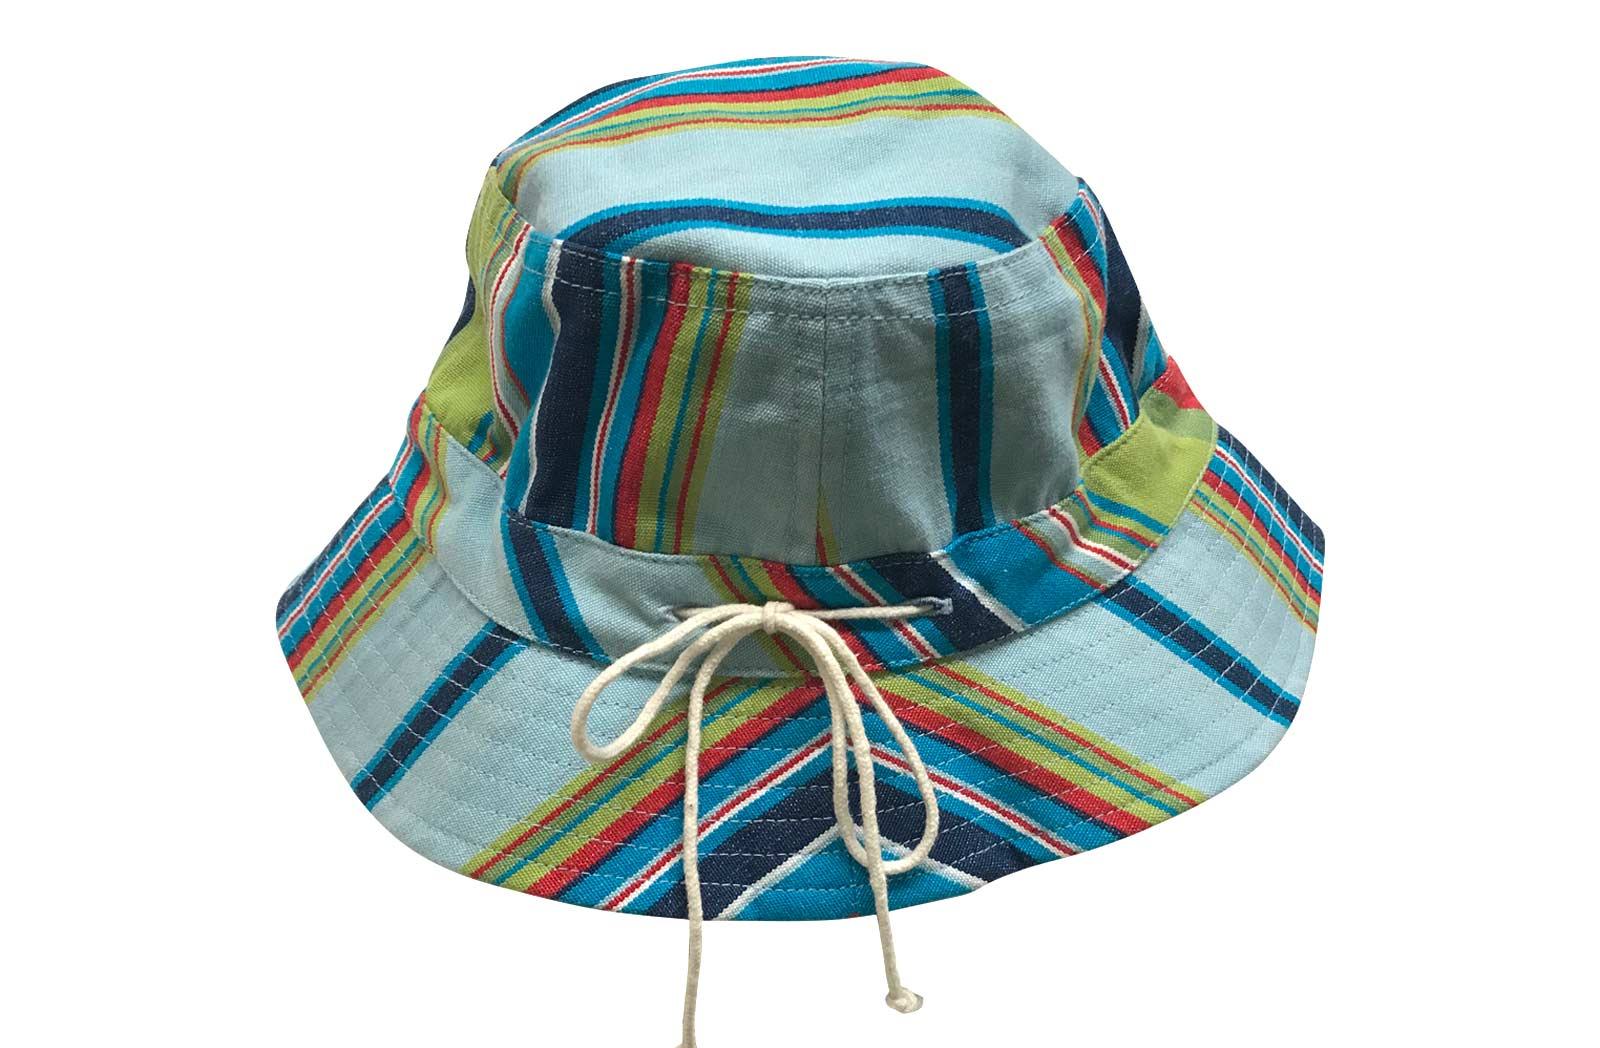 Pale Blue, Navy, Turquoise Striped Kids Sun Hat